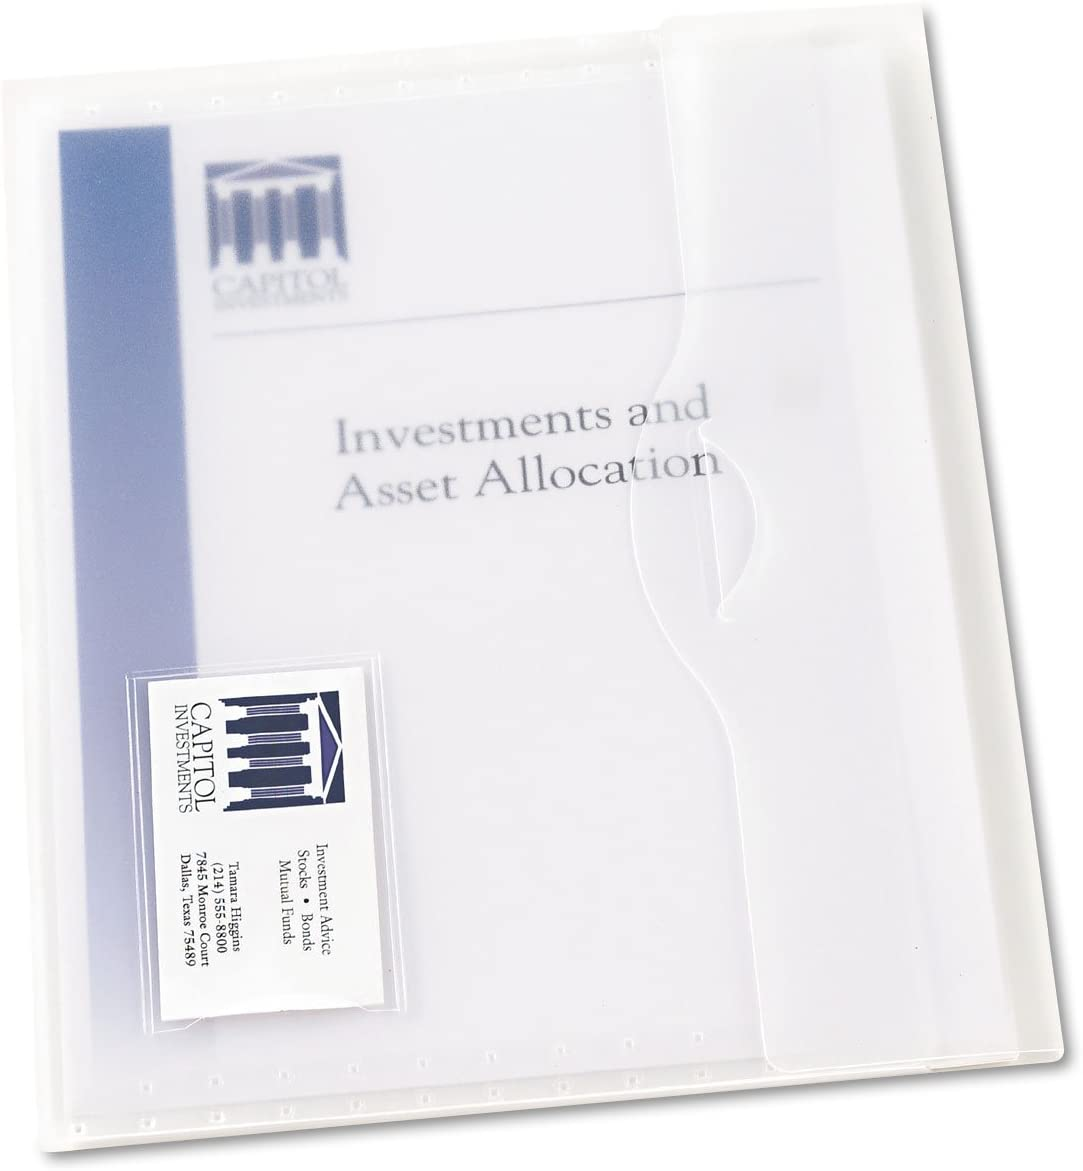 AVERY Translucent Document Wallet, Clear Travel Document Organizer, Holds Up to 50 Pages, 12 Wallets (72278)